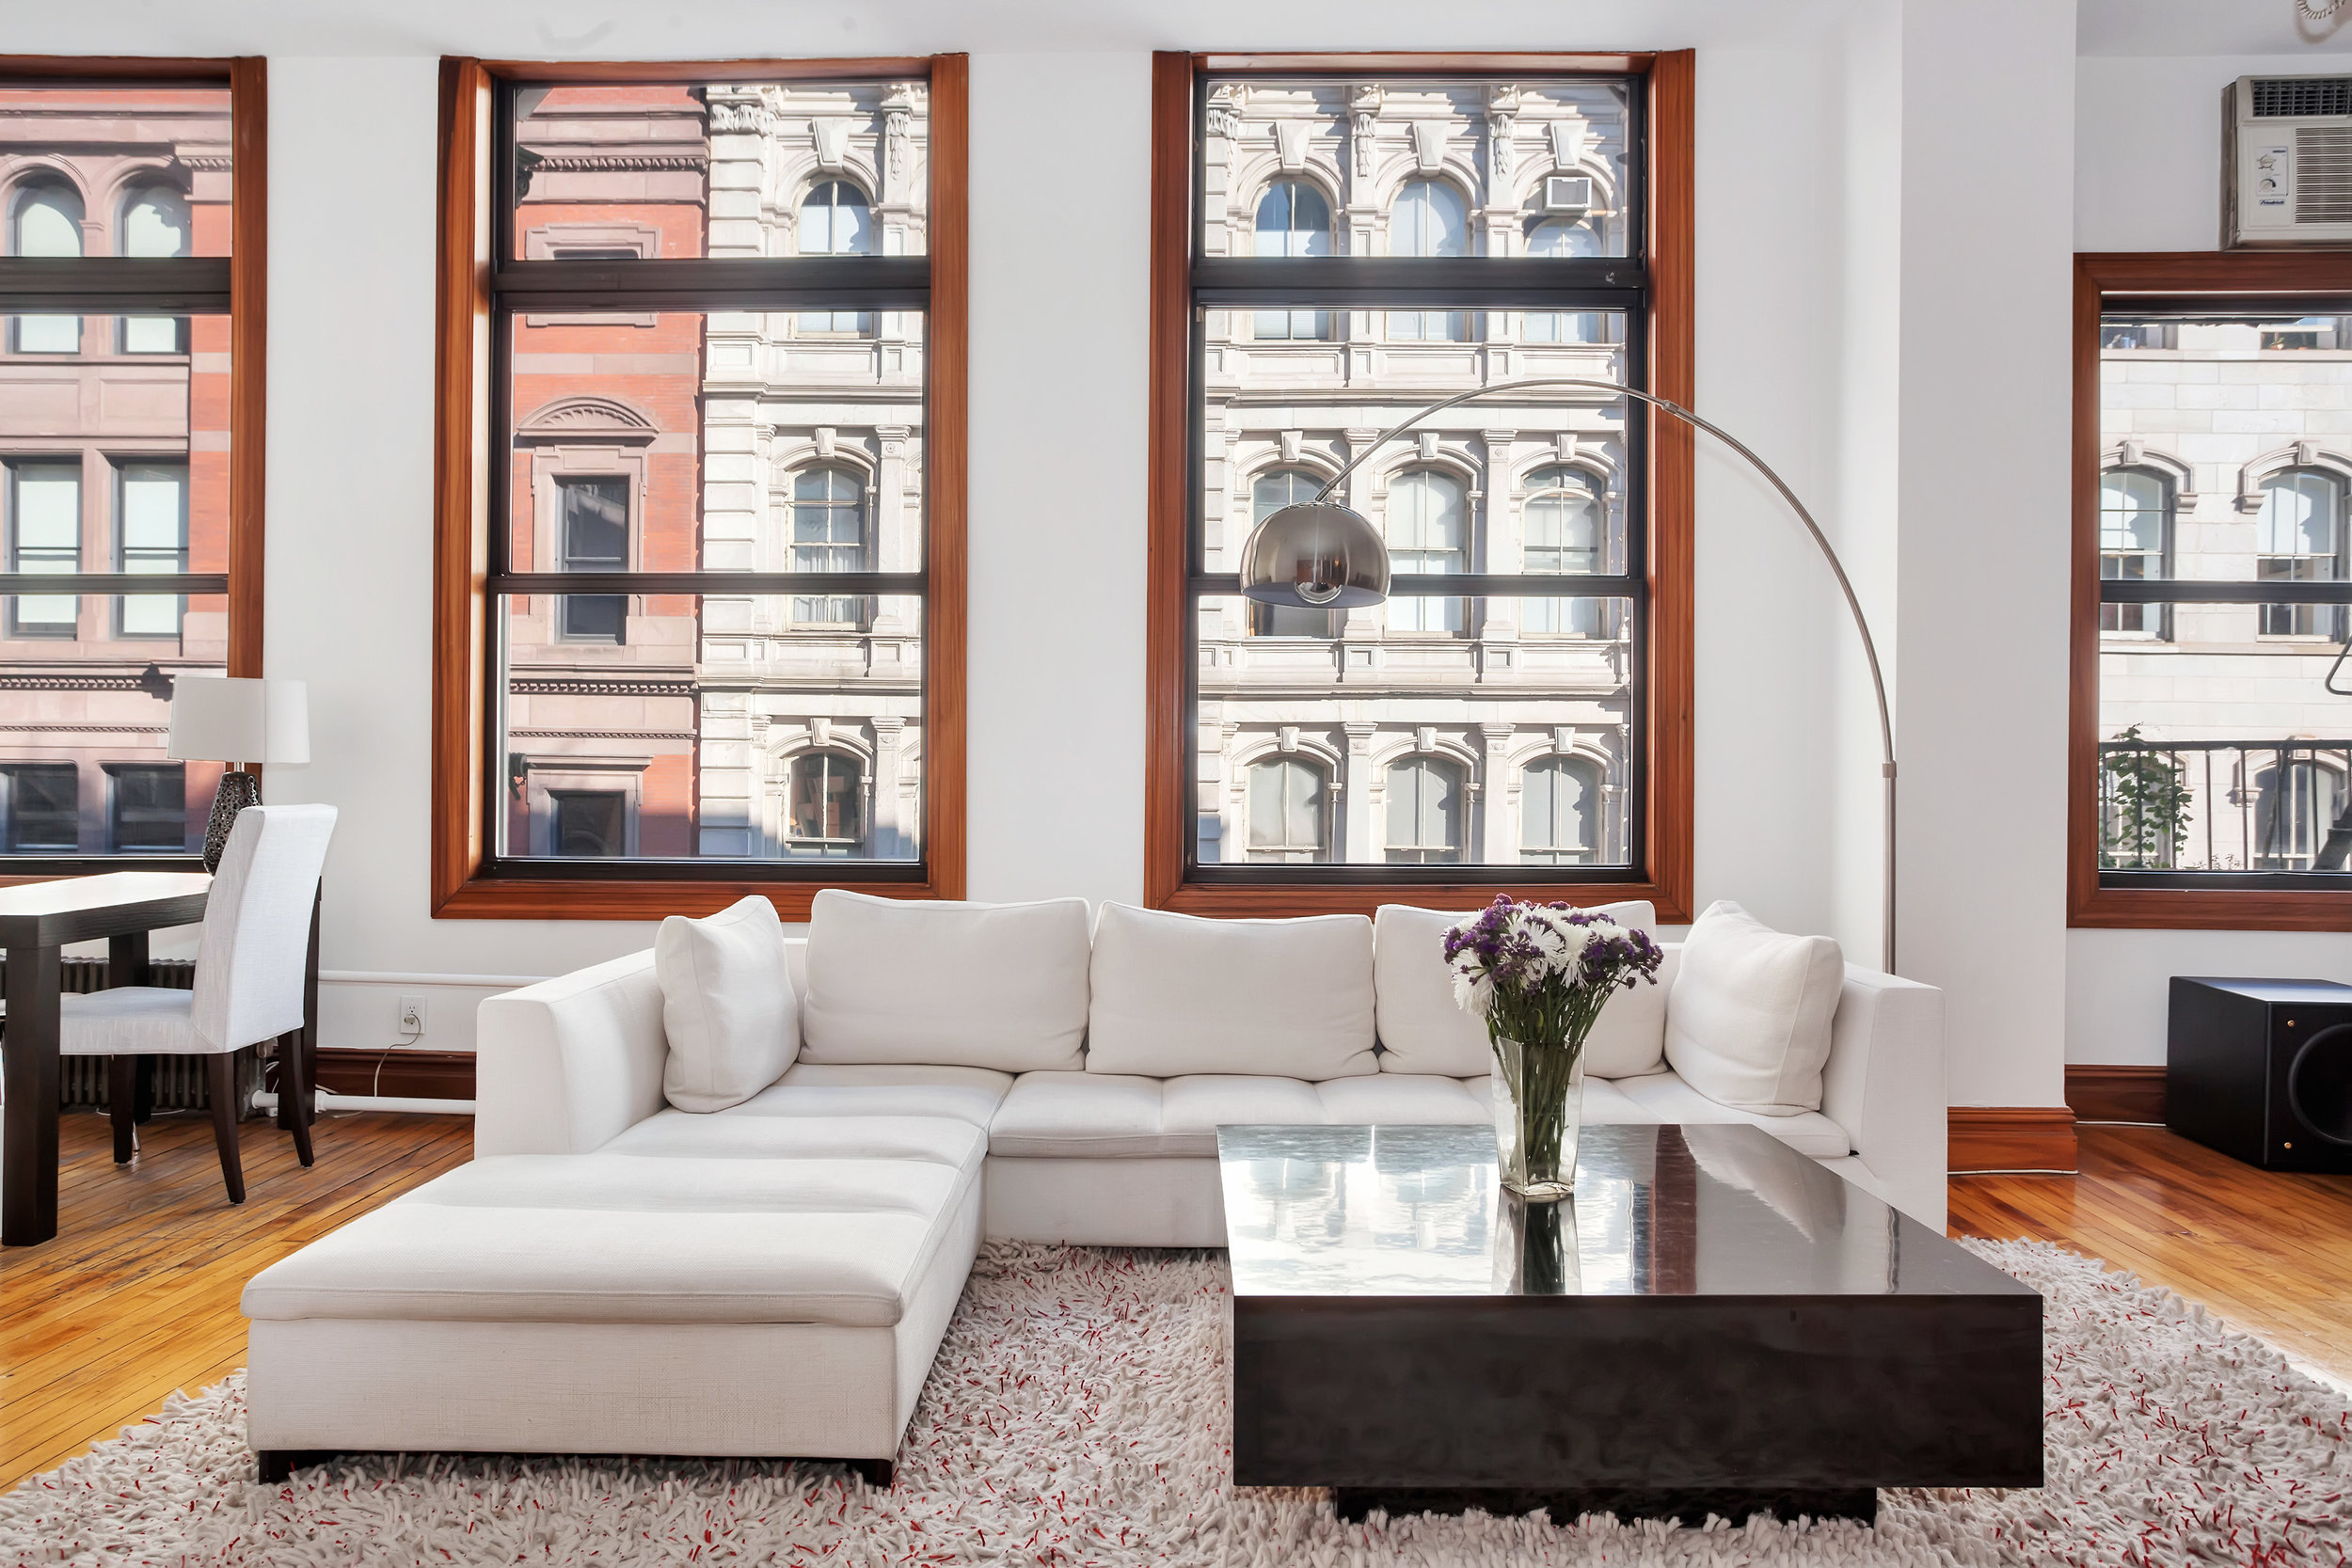 18 East 18th Street, Unit 4W - $3,000,000